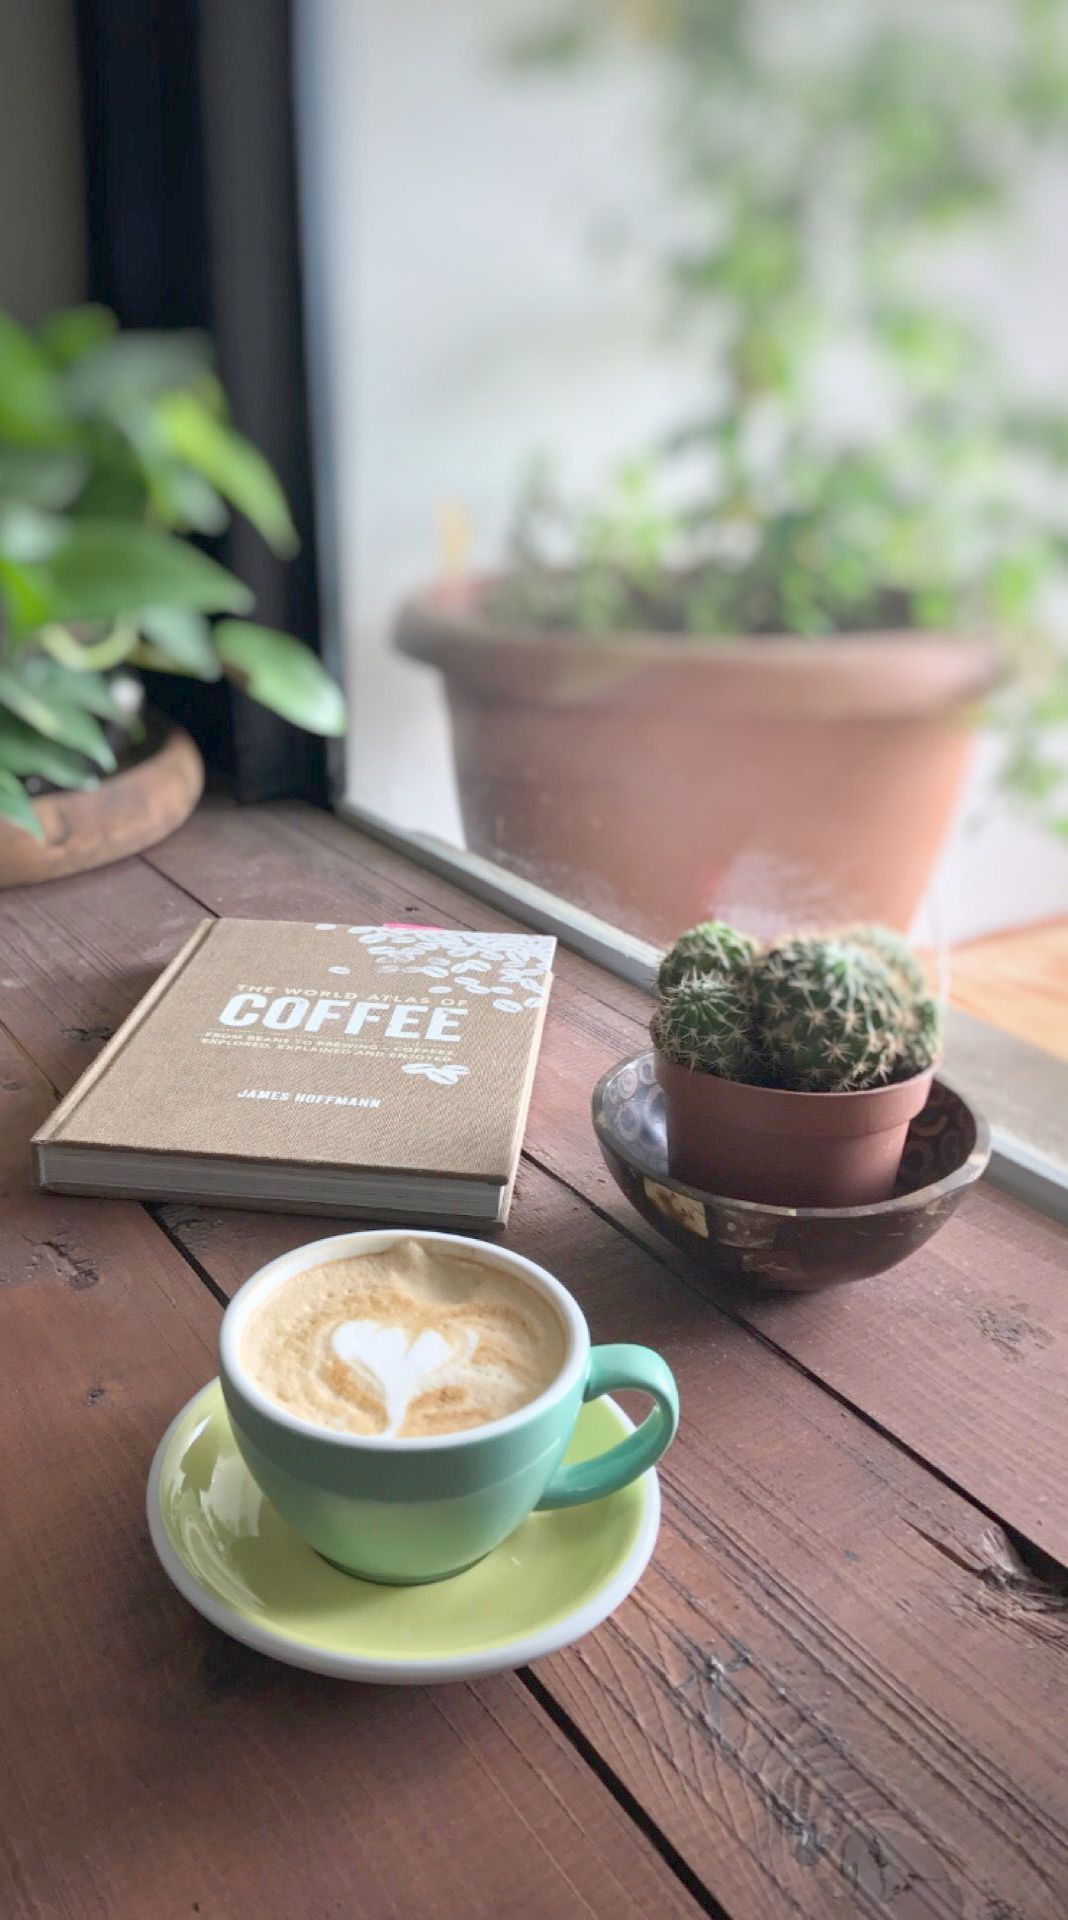 Do You Need To Learn More About Coffee (มีรูปภาพ) น้ำชา